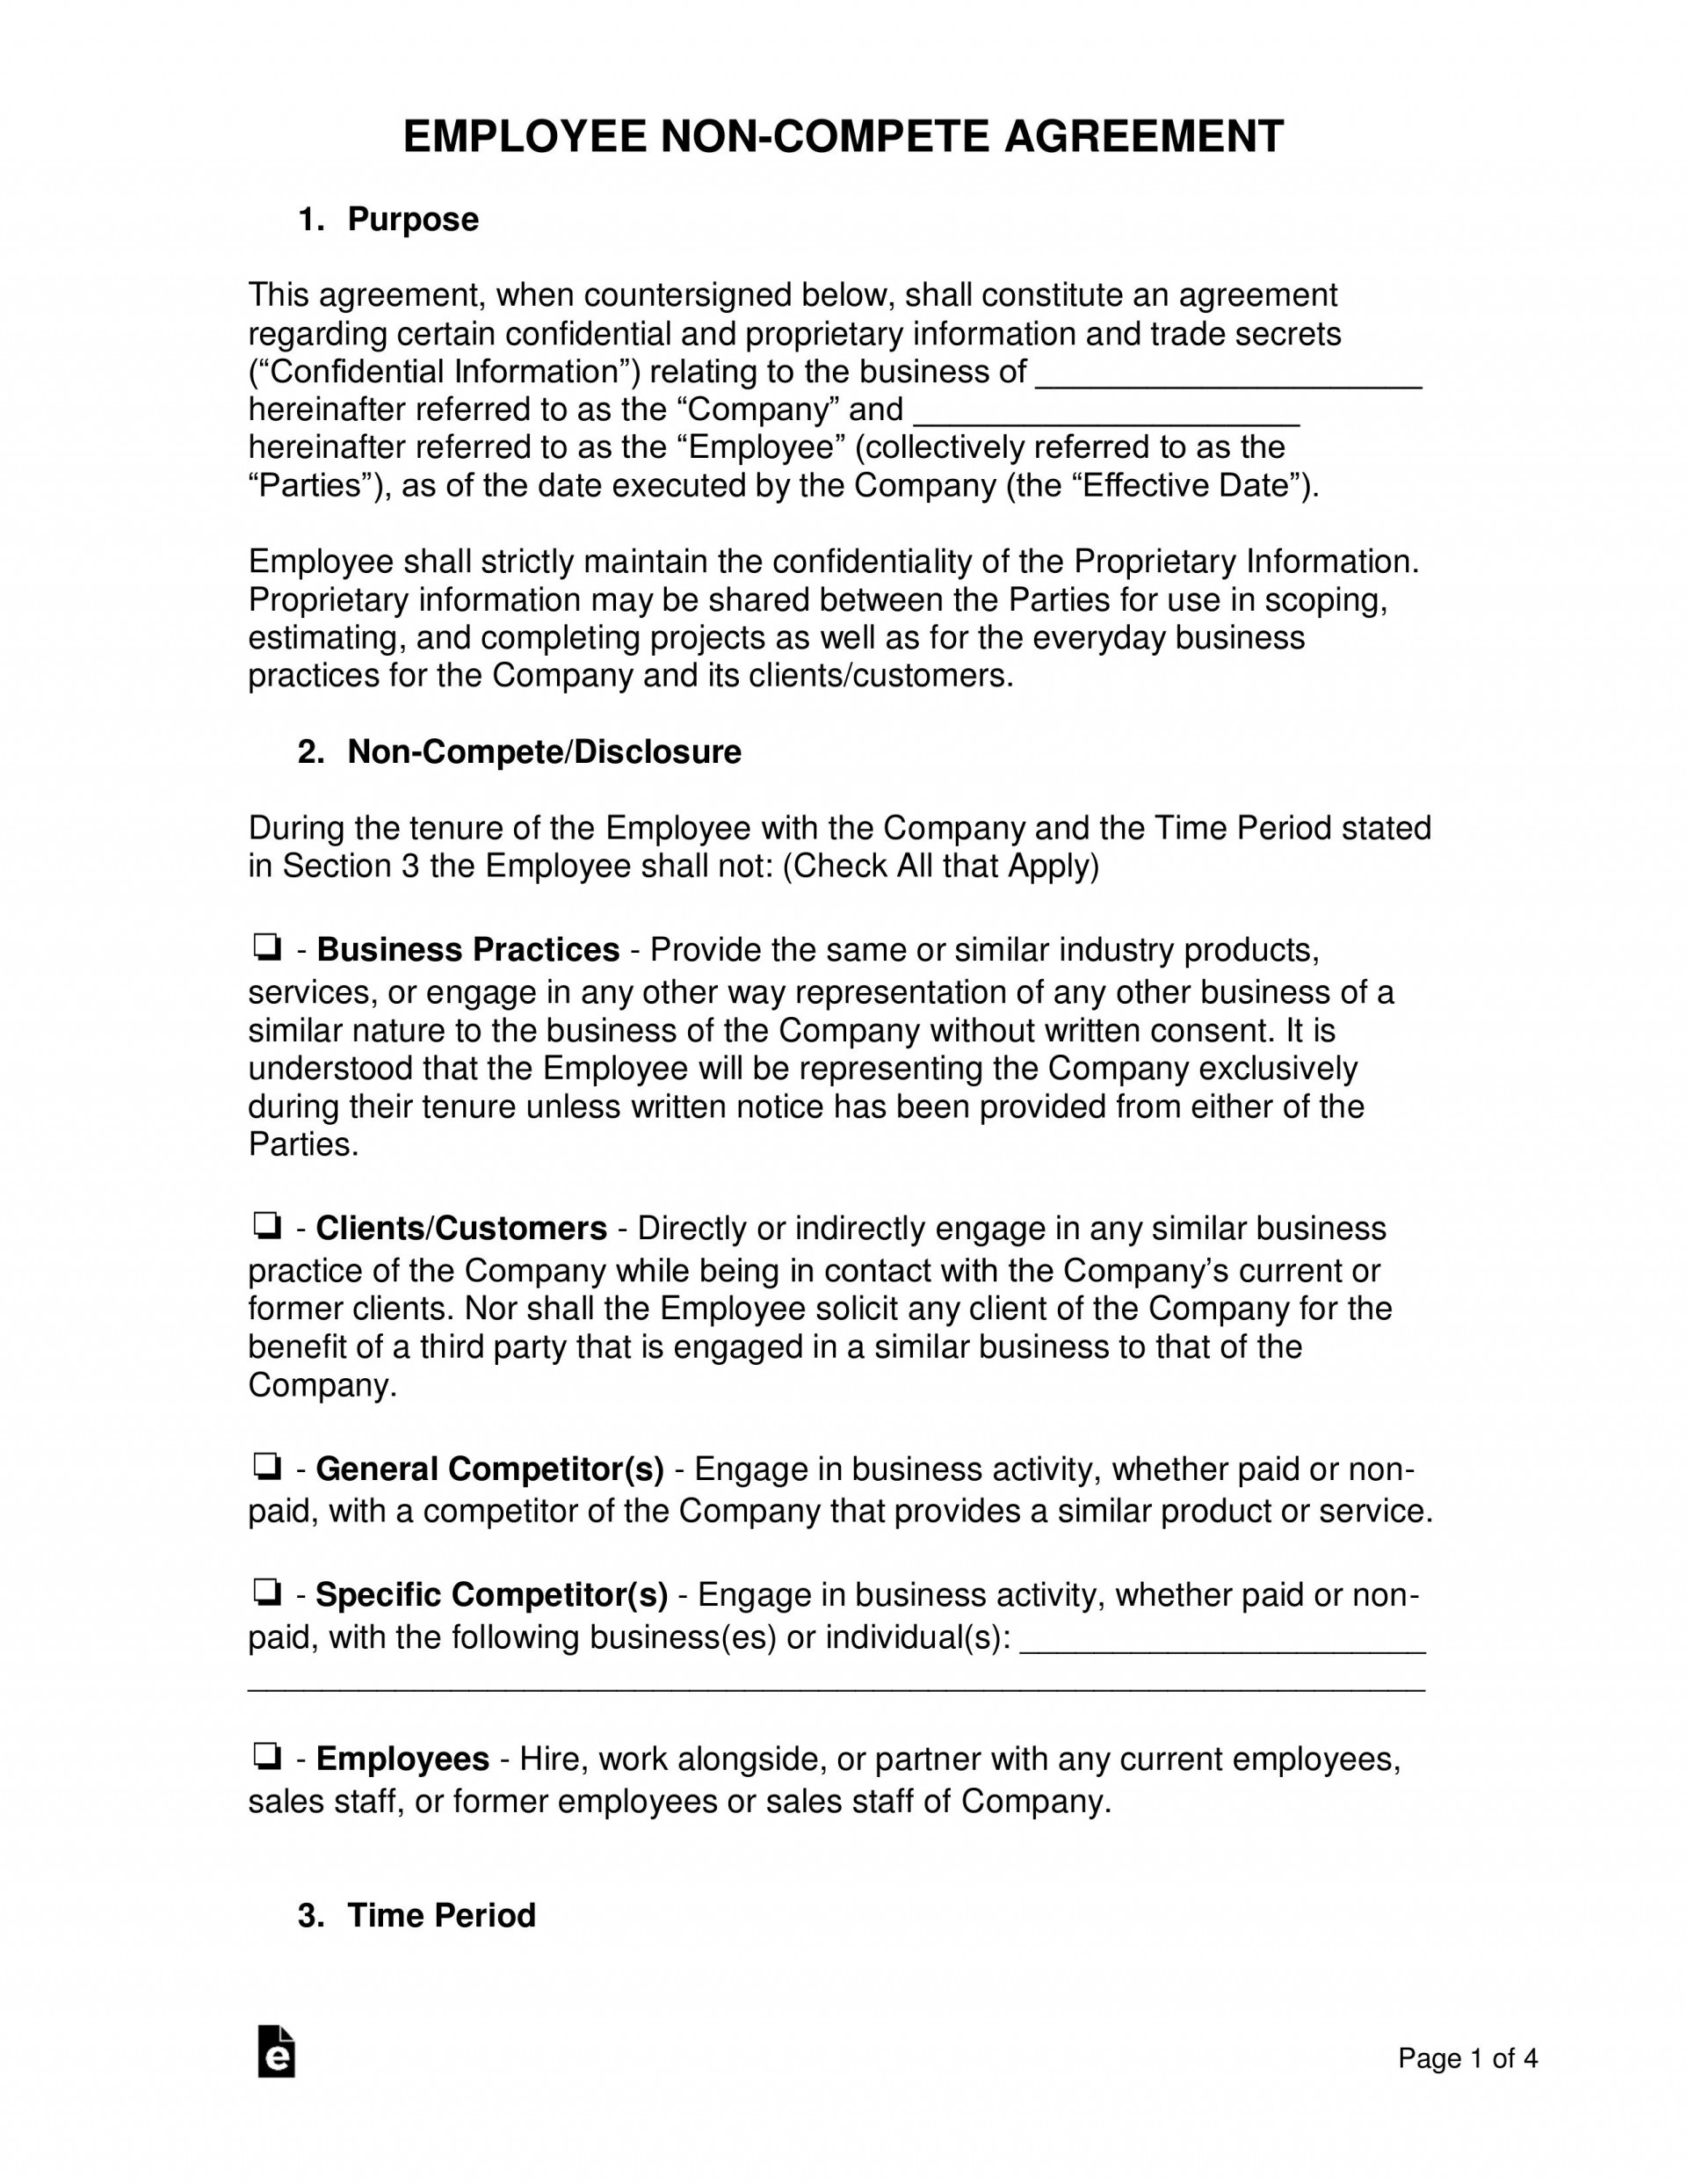 003 Unusual Non Compete Agreement Template Word Highest Clarity  Microsoft Non-compete Free1920